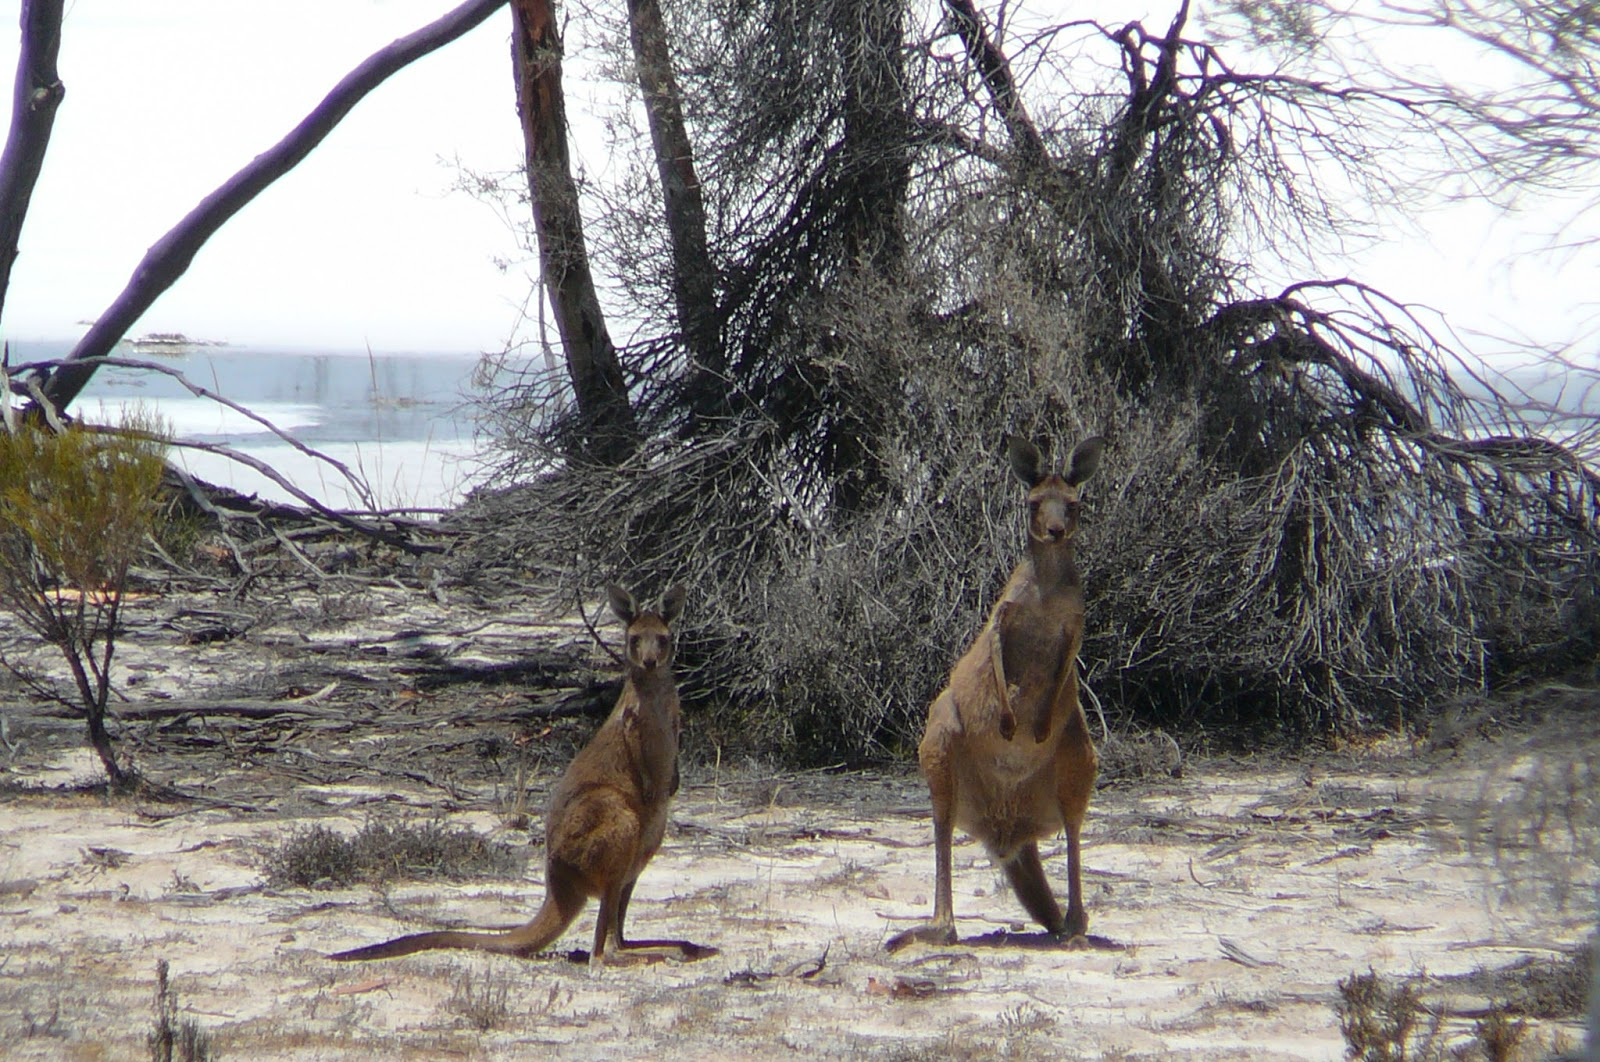 Mother and baby Kangaroos in Hyden Western Australia